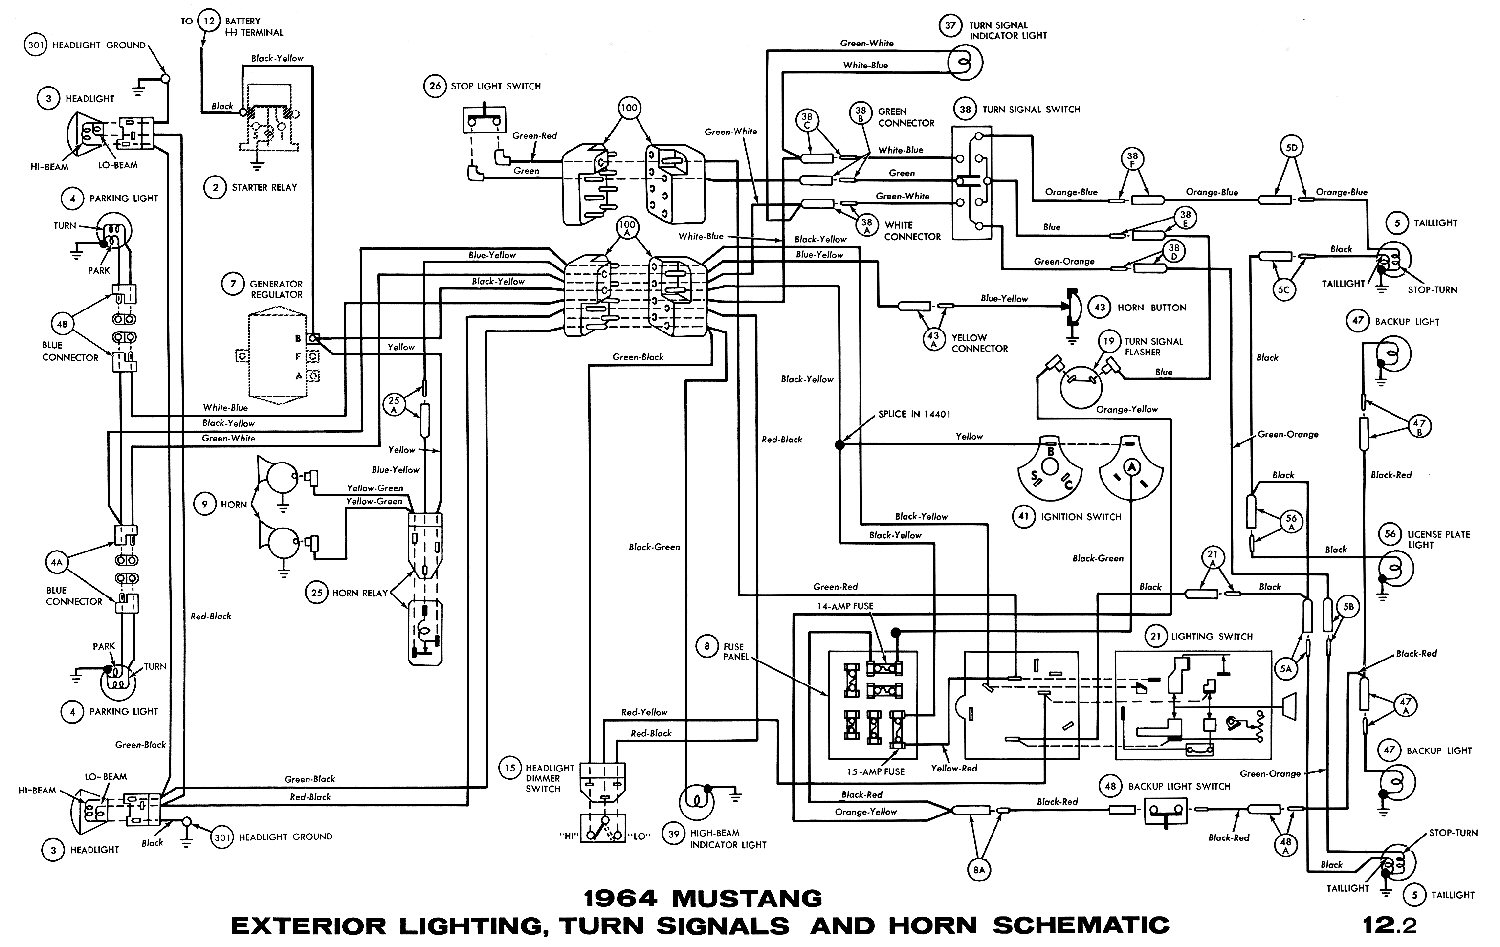 74 Nova Wiring Diagram moreover Fig Fig 4 Fuses On 1985 1989 Models moreover Mopar 440 Wiring Diagram as well 70 Corvette Wiper Vacuum Diagram besides 7 3 Powerstroke Fuel Lines. on 70 camaro steering wiring plug